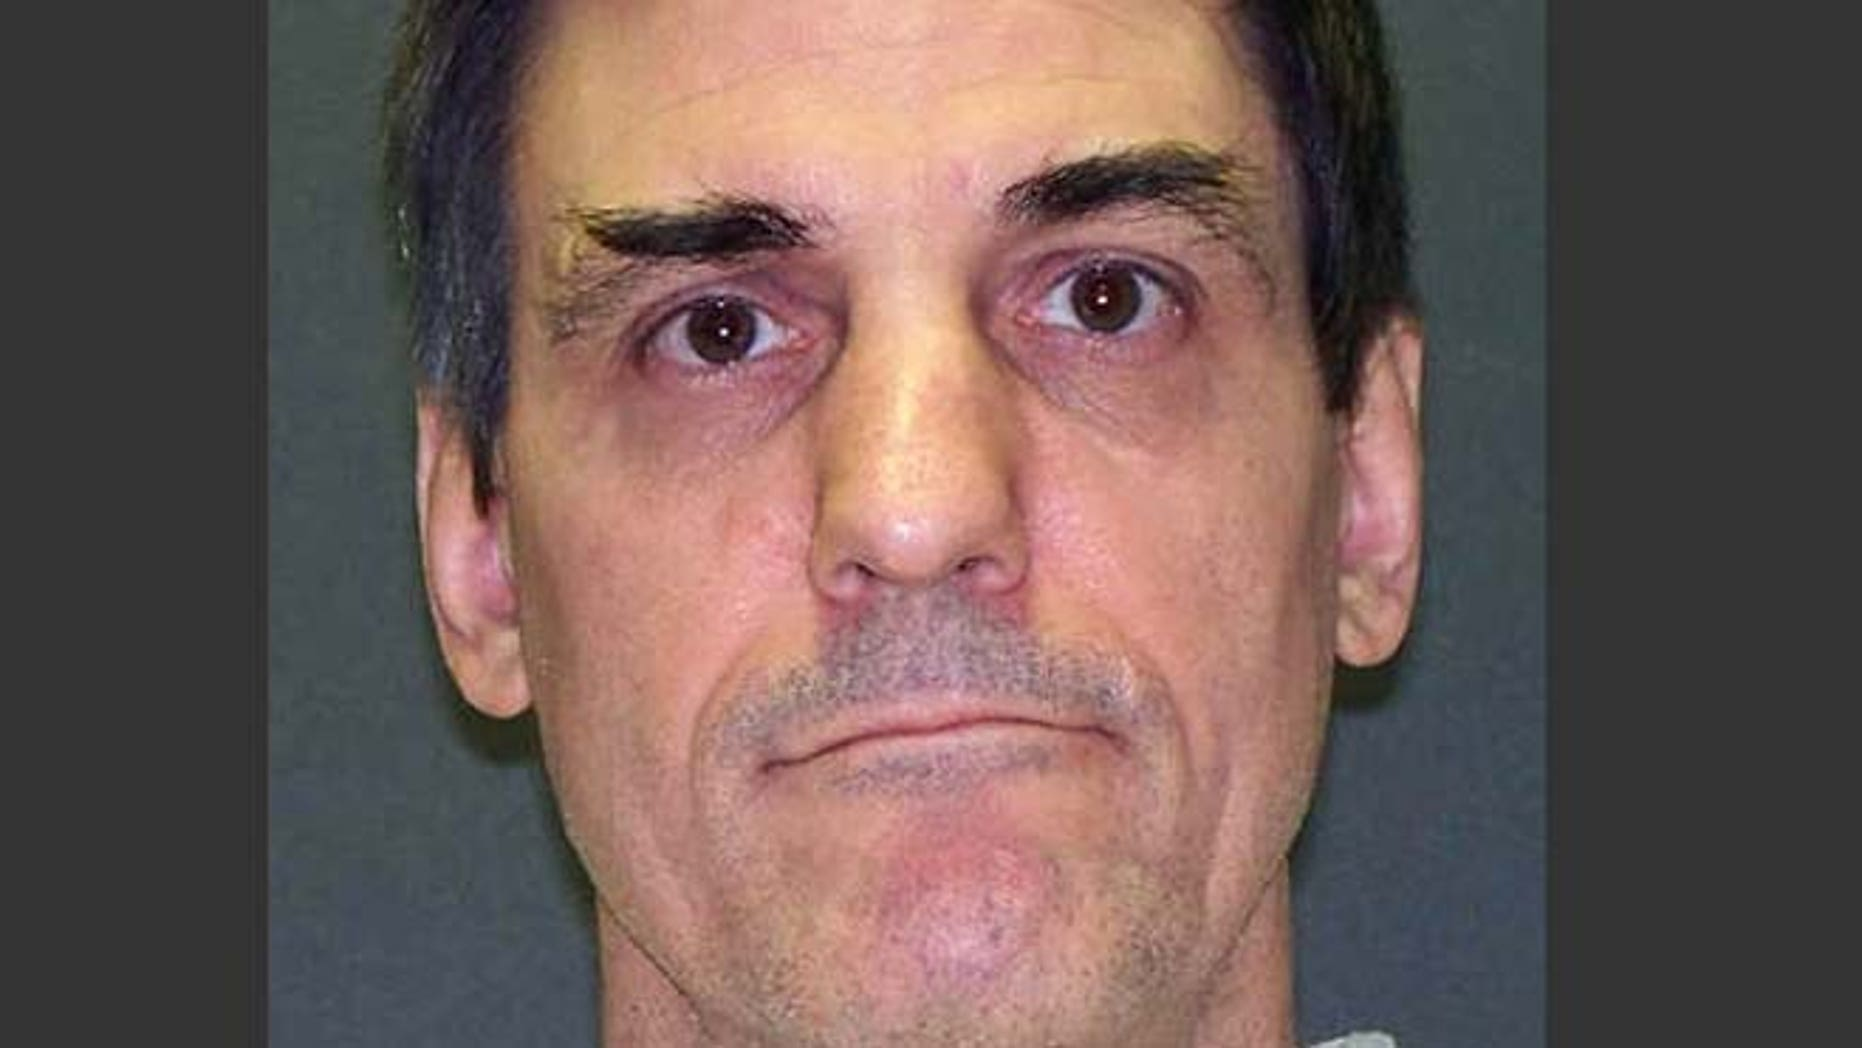 DEC 3:  A federal appeals court has given Scott Panetti a reprieve from execution. His attorneys say  he is too delusional to be put to death.